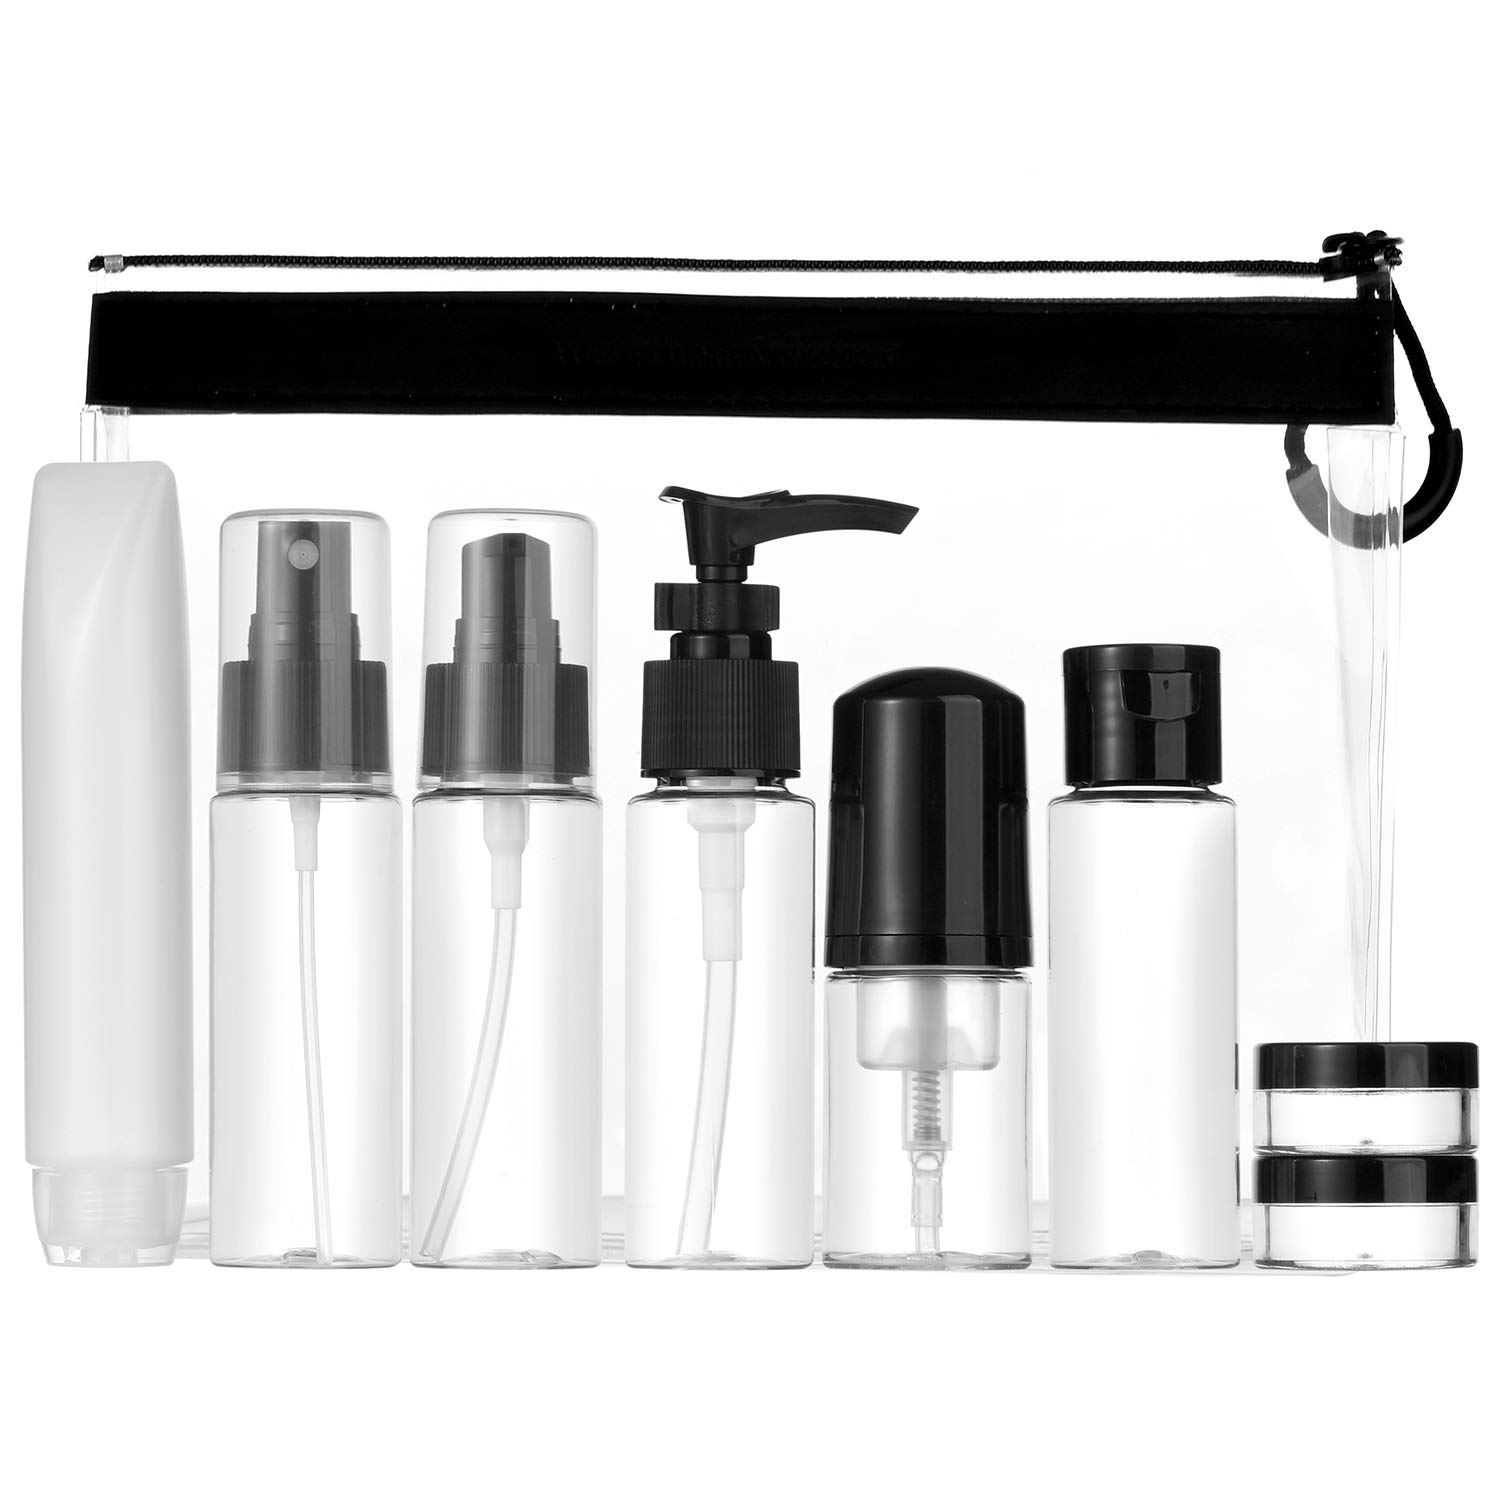 Travel Size Toiletry Bottles Set, TSA Approved Clear Cosmetic Makeup Liquids Containers with Zipper Bag, Pack of 9